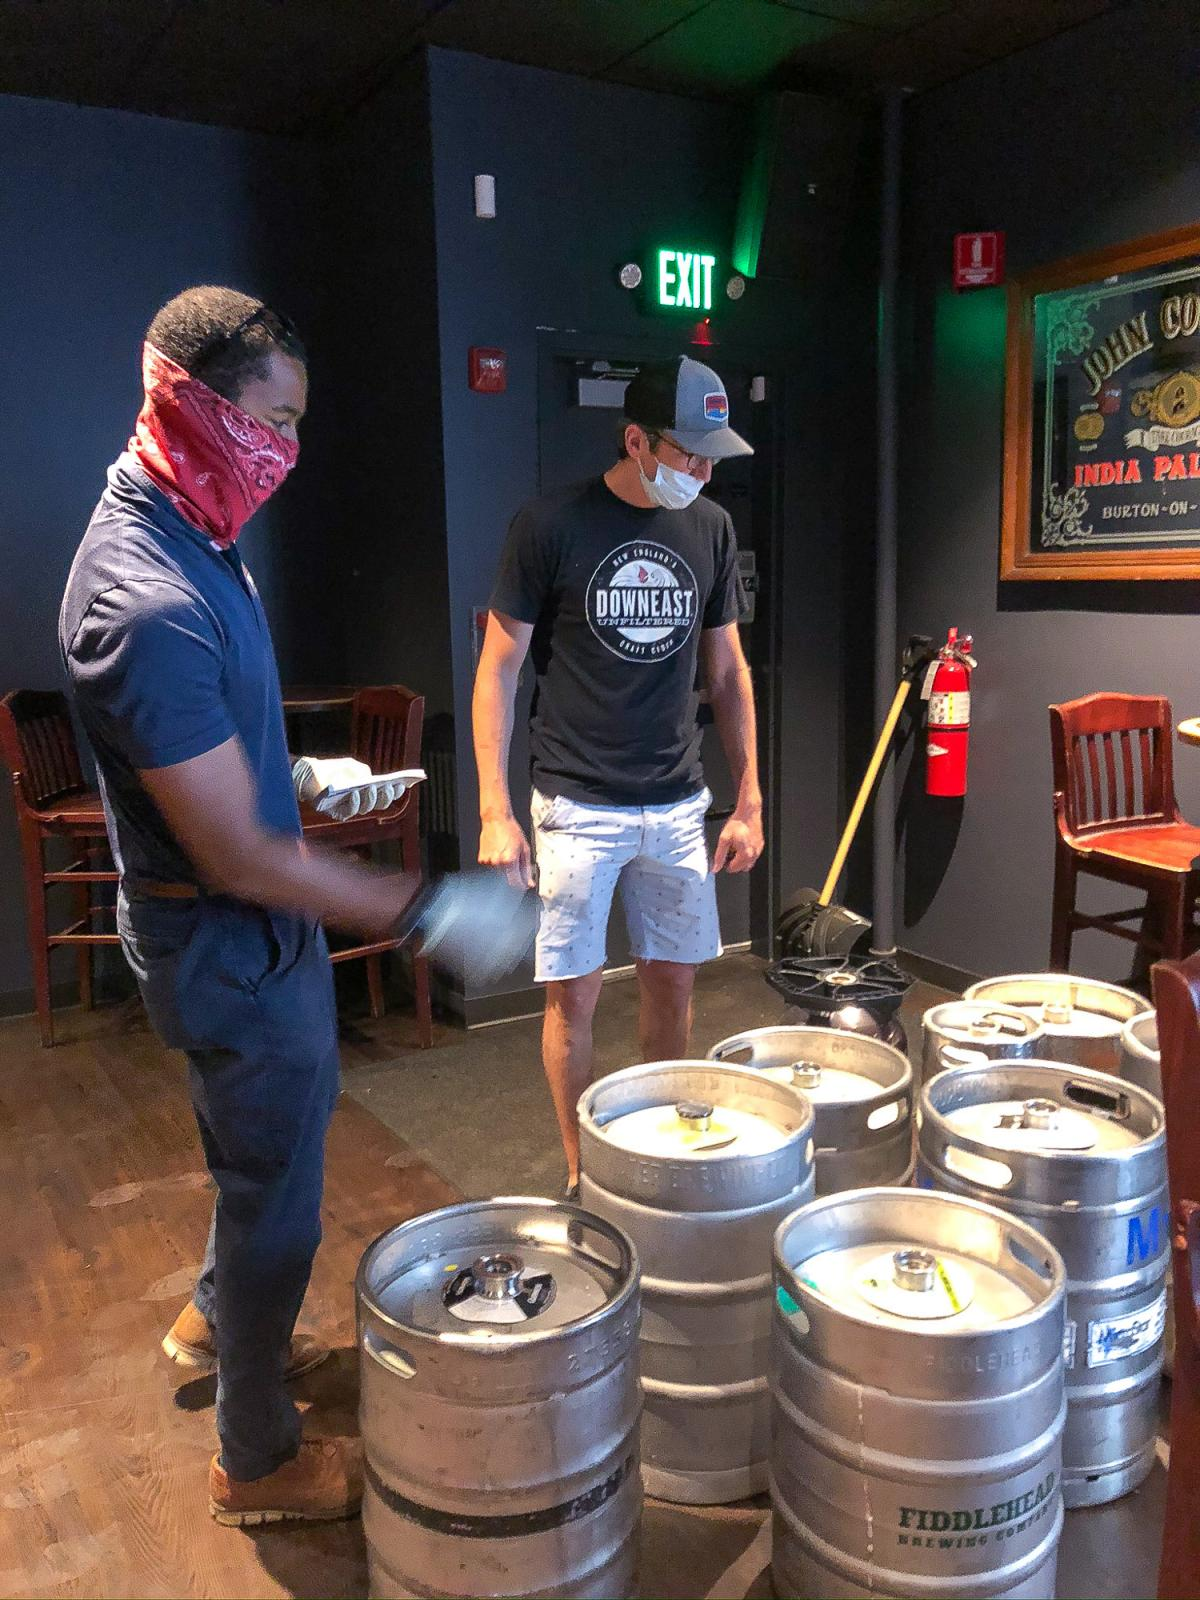 Vinny Gibson of Burke Distributing counts up kegs that Cornwall's is returning. The pub bought the beer in March, when it expected big crowds for Saint Patrick's Day, but the kegs have been gathering dust and the beer has gone flat since the pub closed be